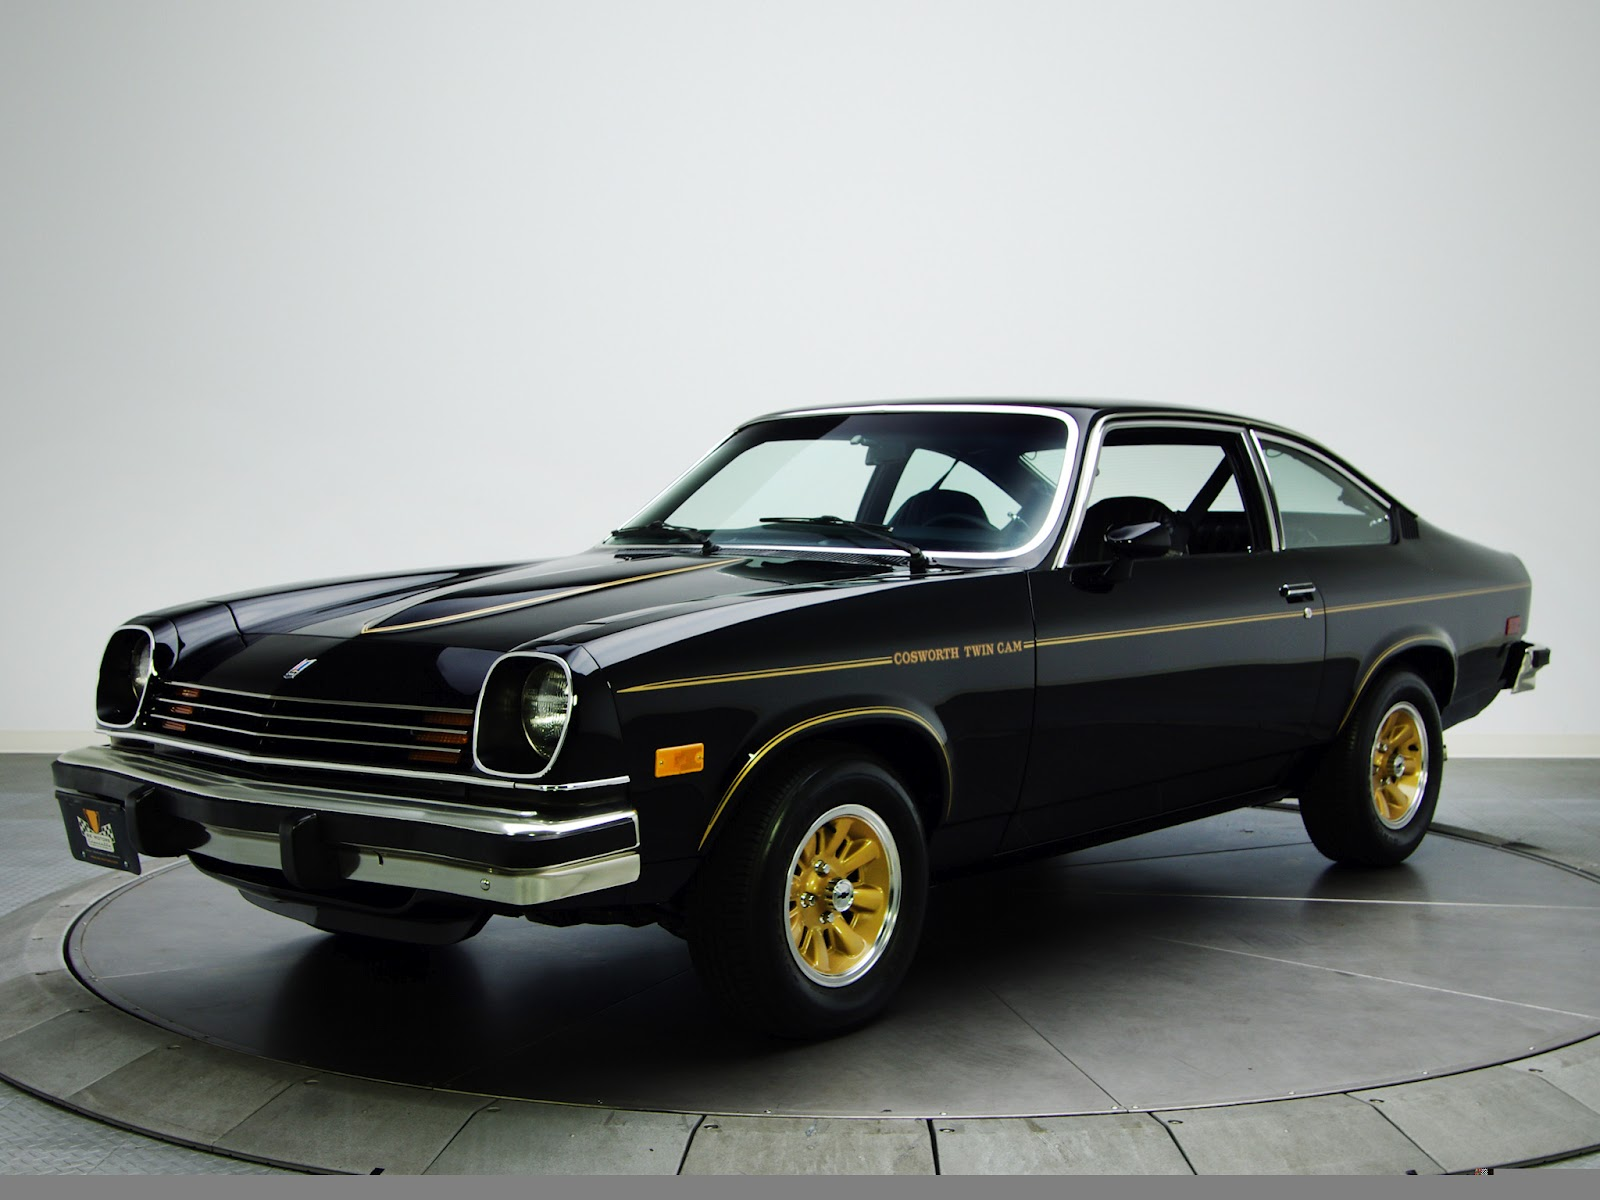 Chevrolet Cosworth Vega 1976 as well 2950 Diesel 1982 Chevrolet Luv Diesel Pickup also Lago Martianez additionally 7282222498 together with 1985 Chevrolet Camaro Z28 Pictures T10017 pi35859483. on the car 1977